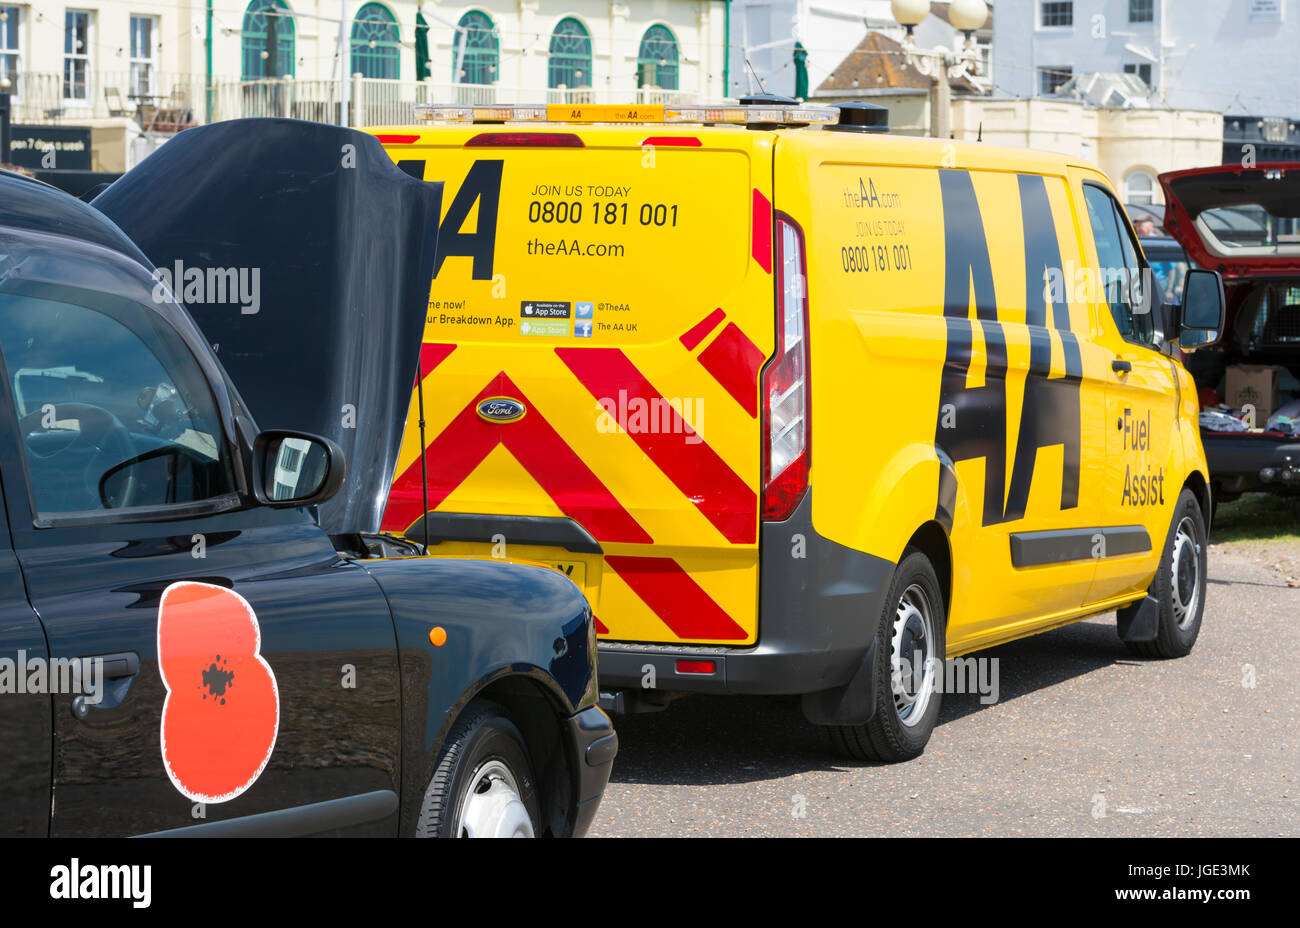 Broken down London Black cab with bonnet up and an AA van on scene. - Stock Image